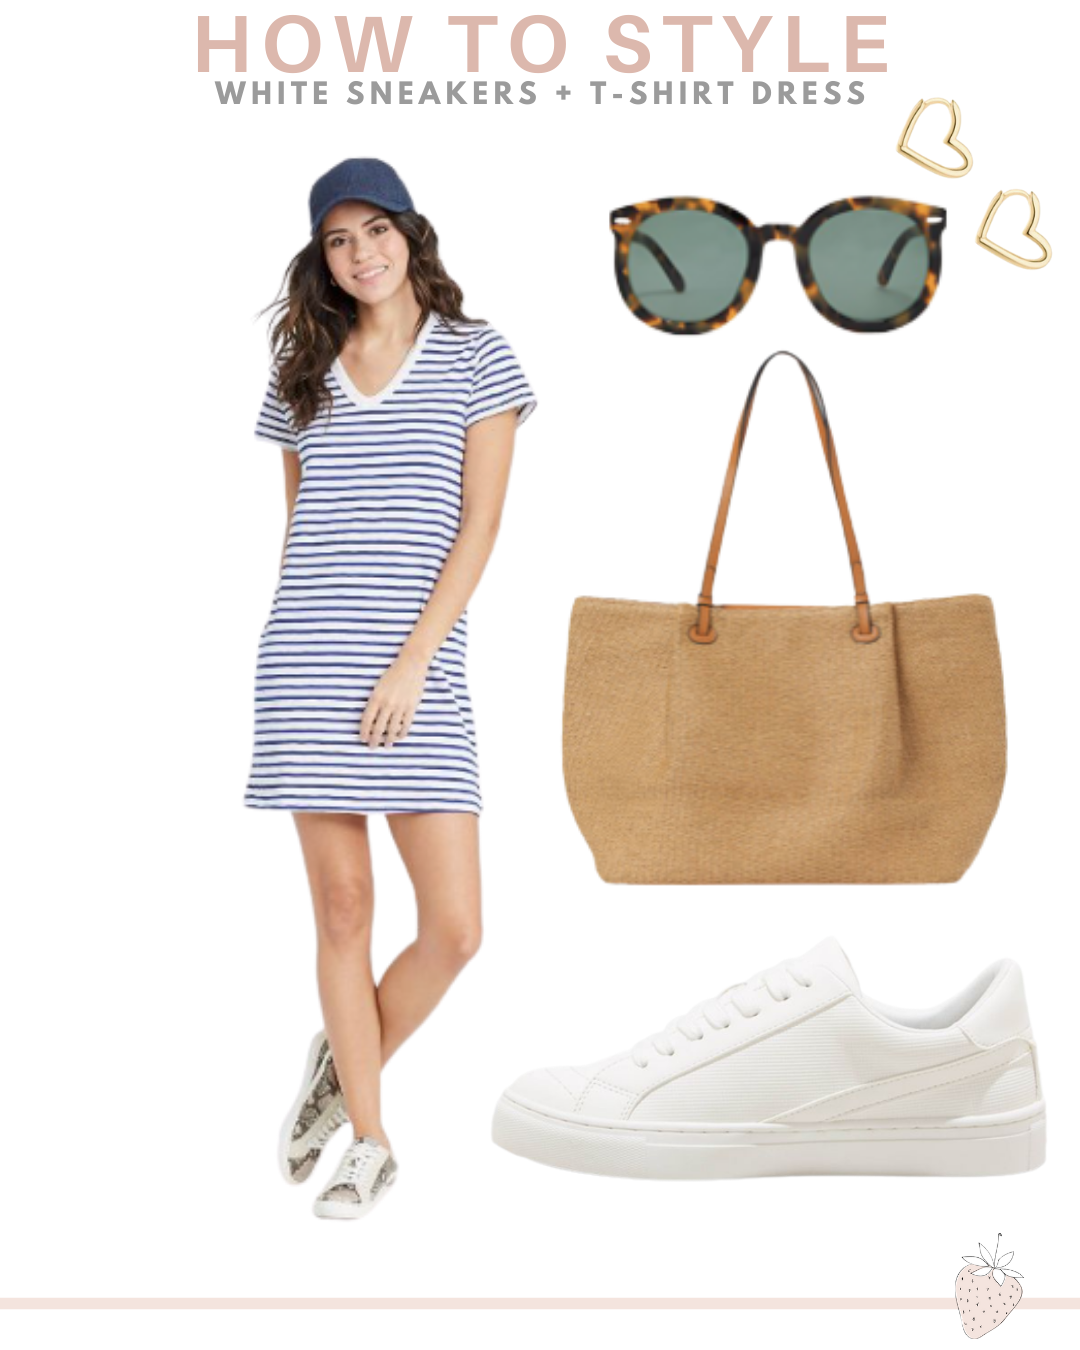 tshirt dress and sneakers